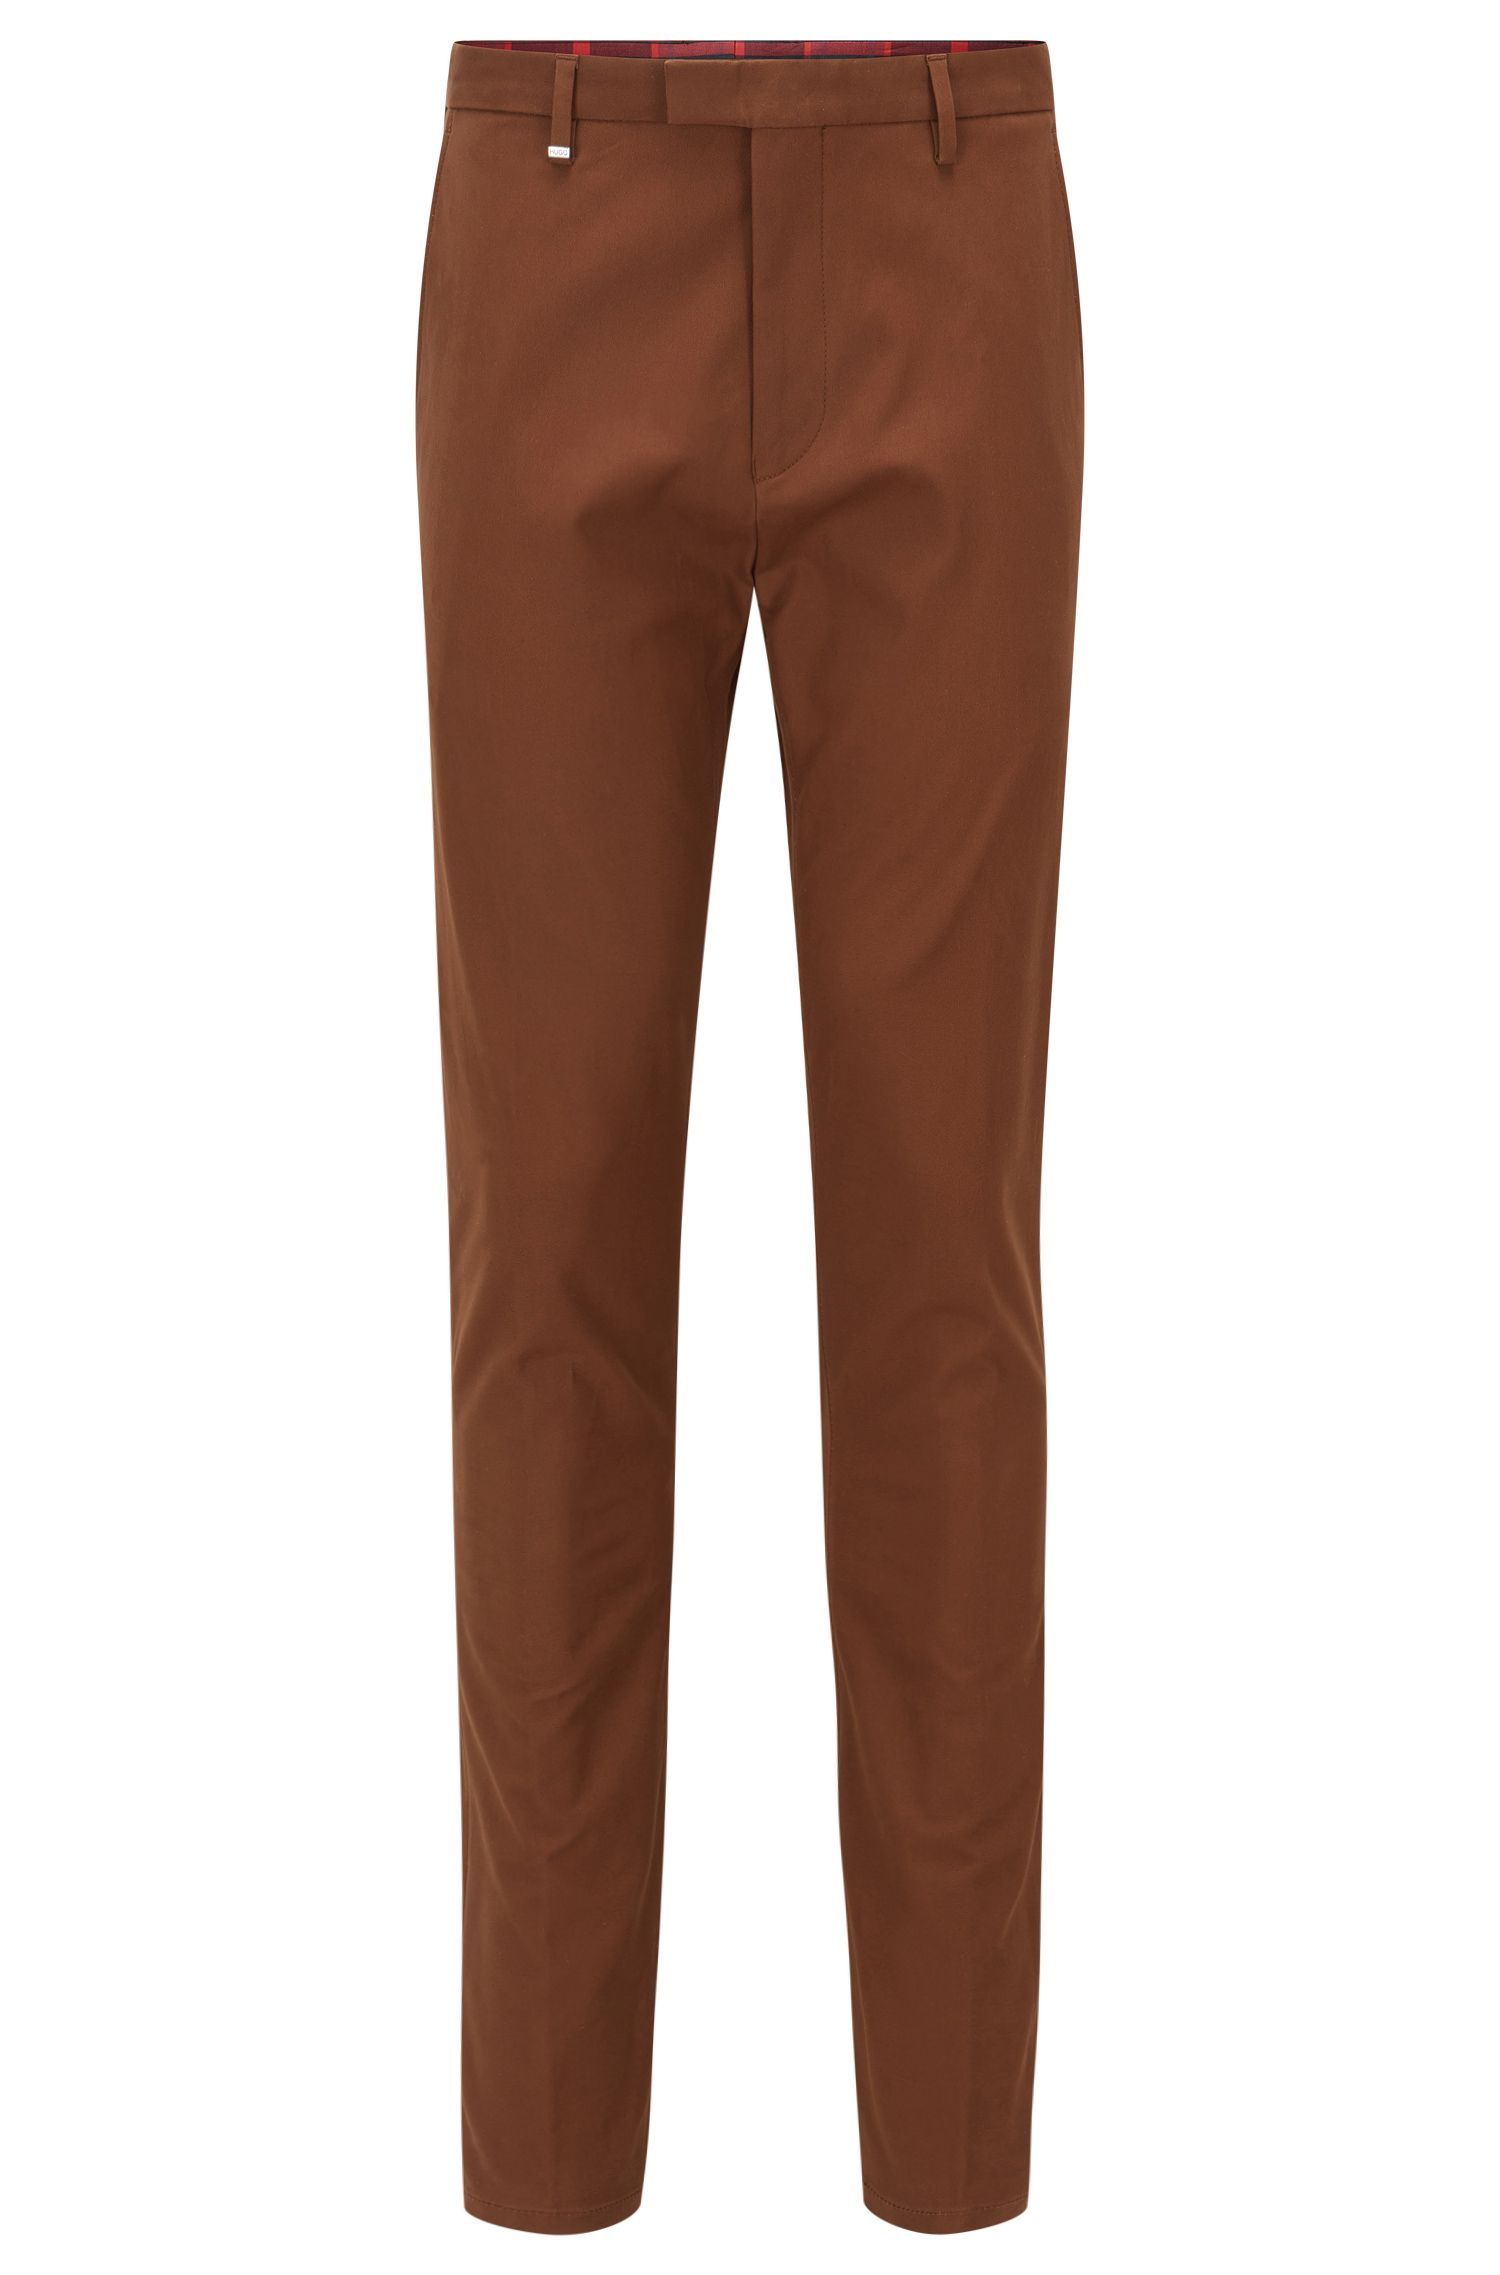 Stretch Wool Blend Pants, Tapered Fit | Helgo